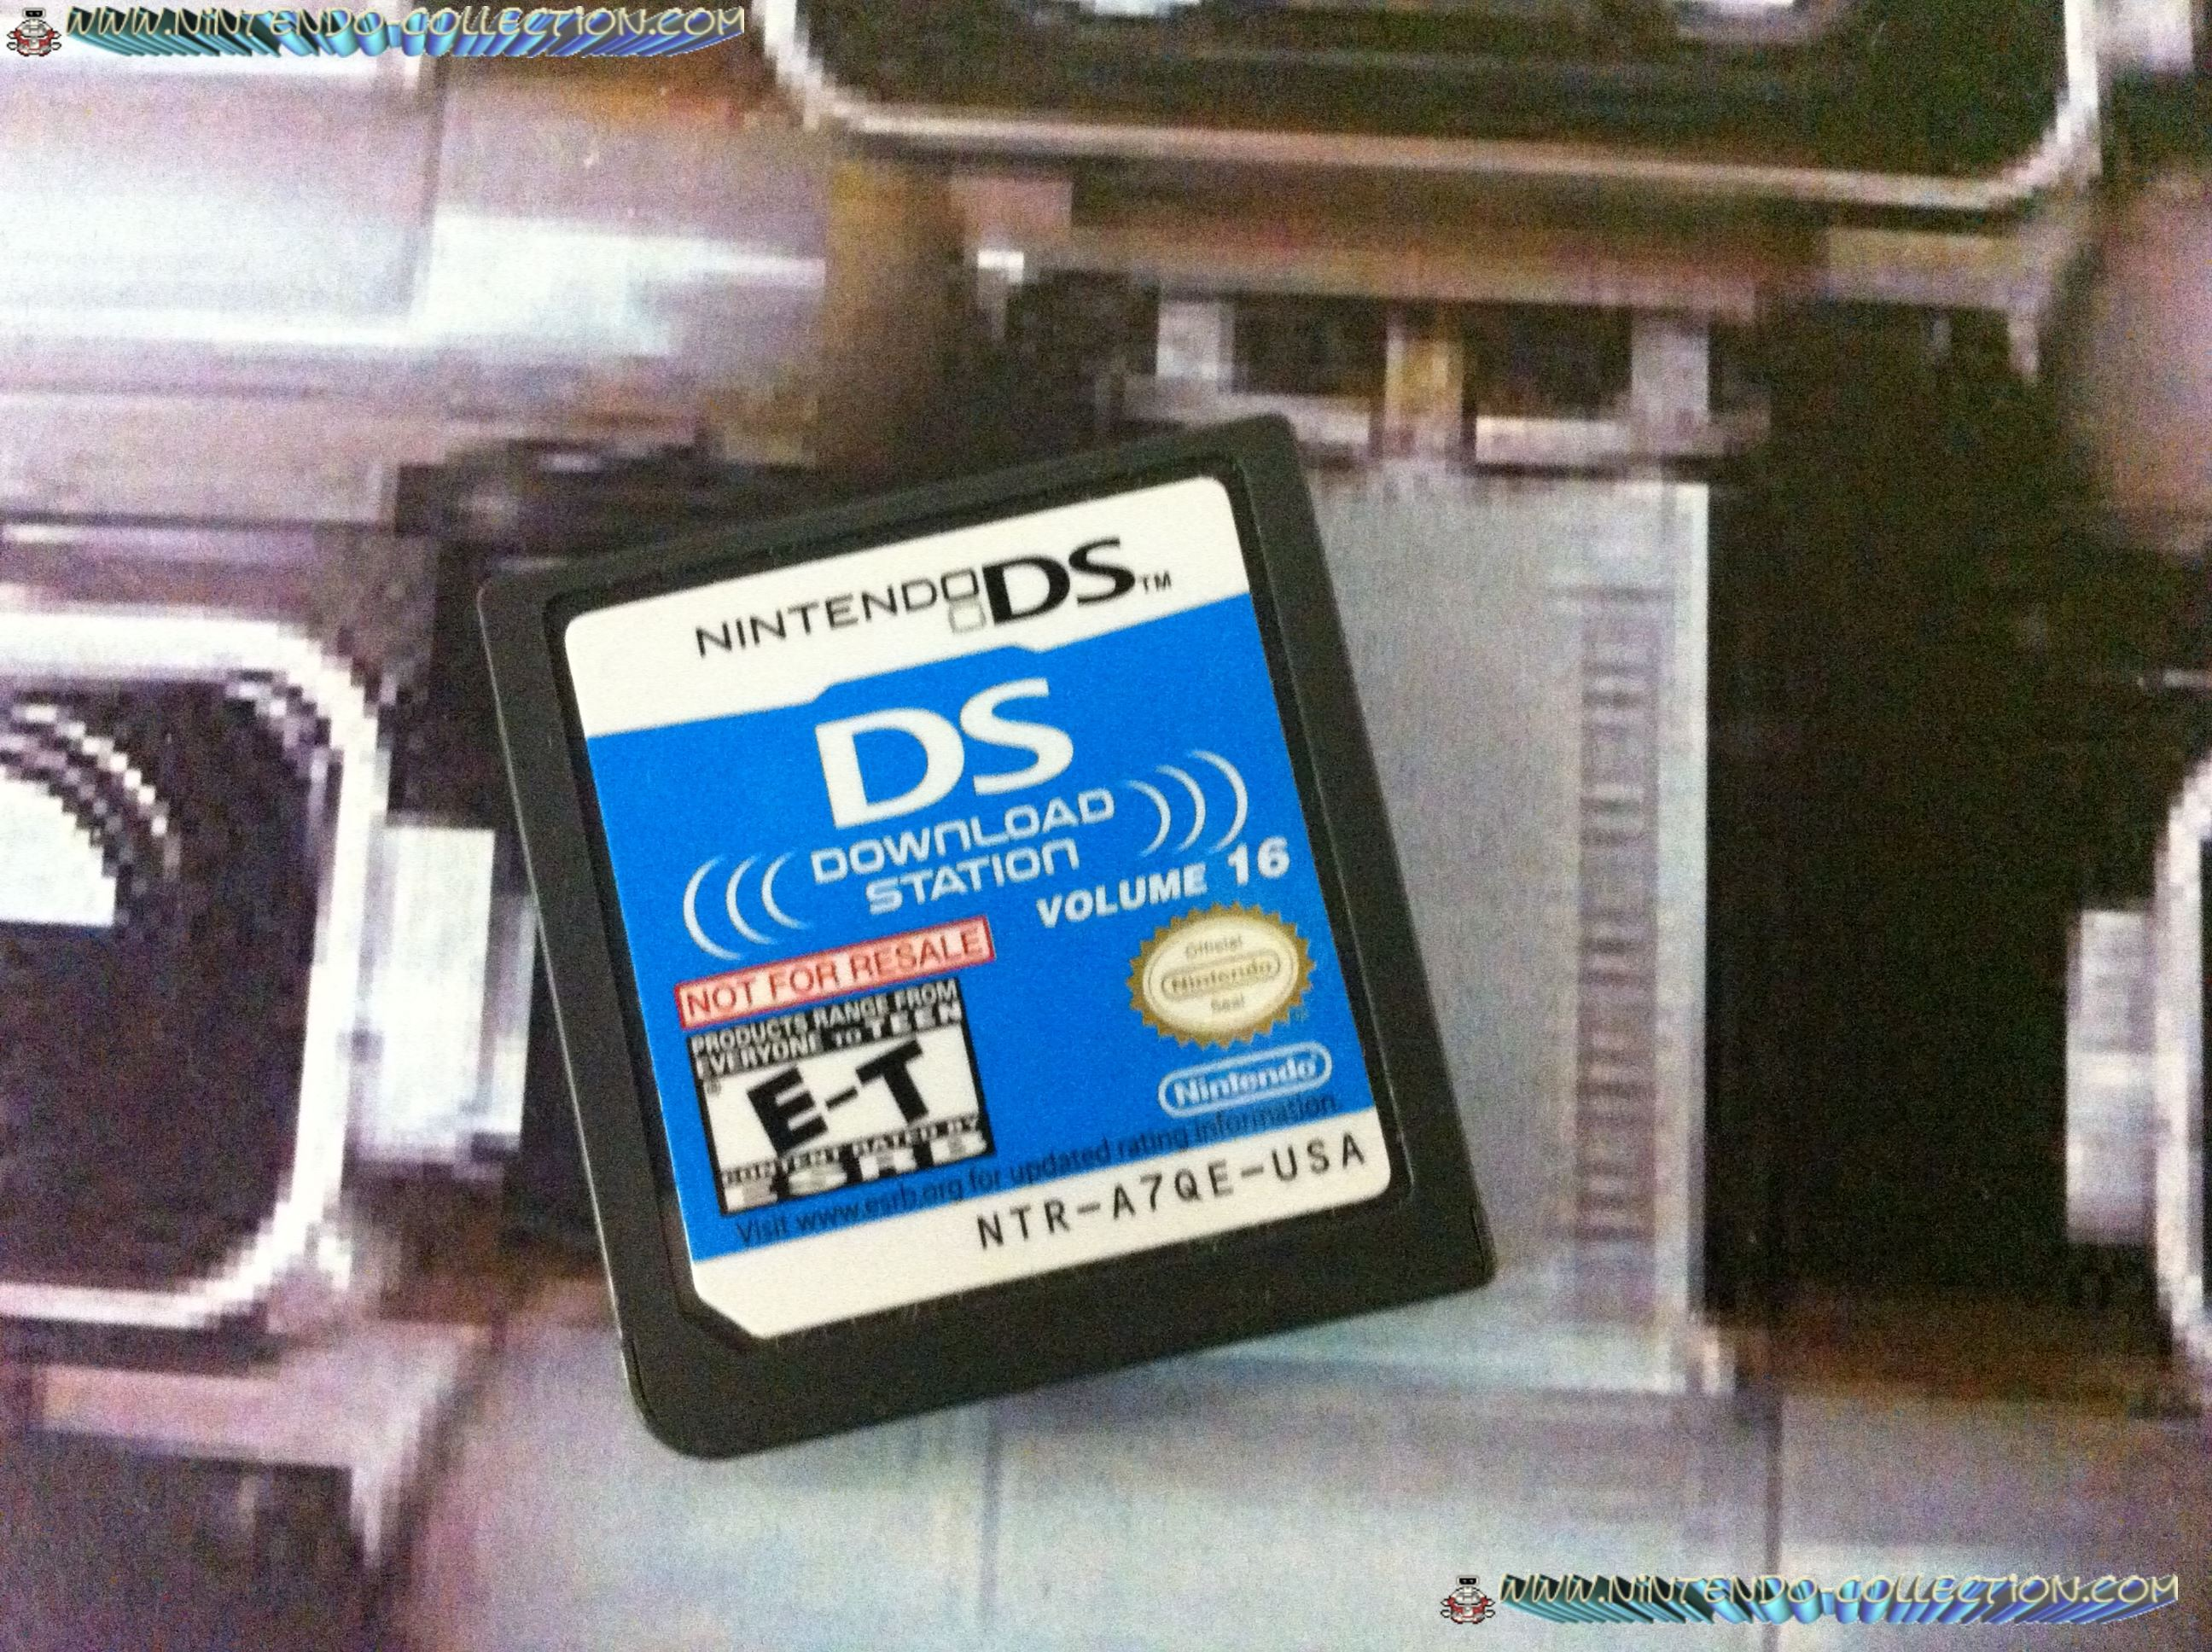 www.nintendo-collection.com - Demo DS 3 DS - Not For Resale - US Download Station Volume 16